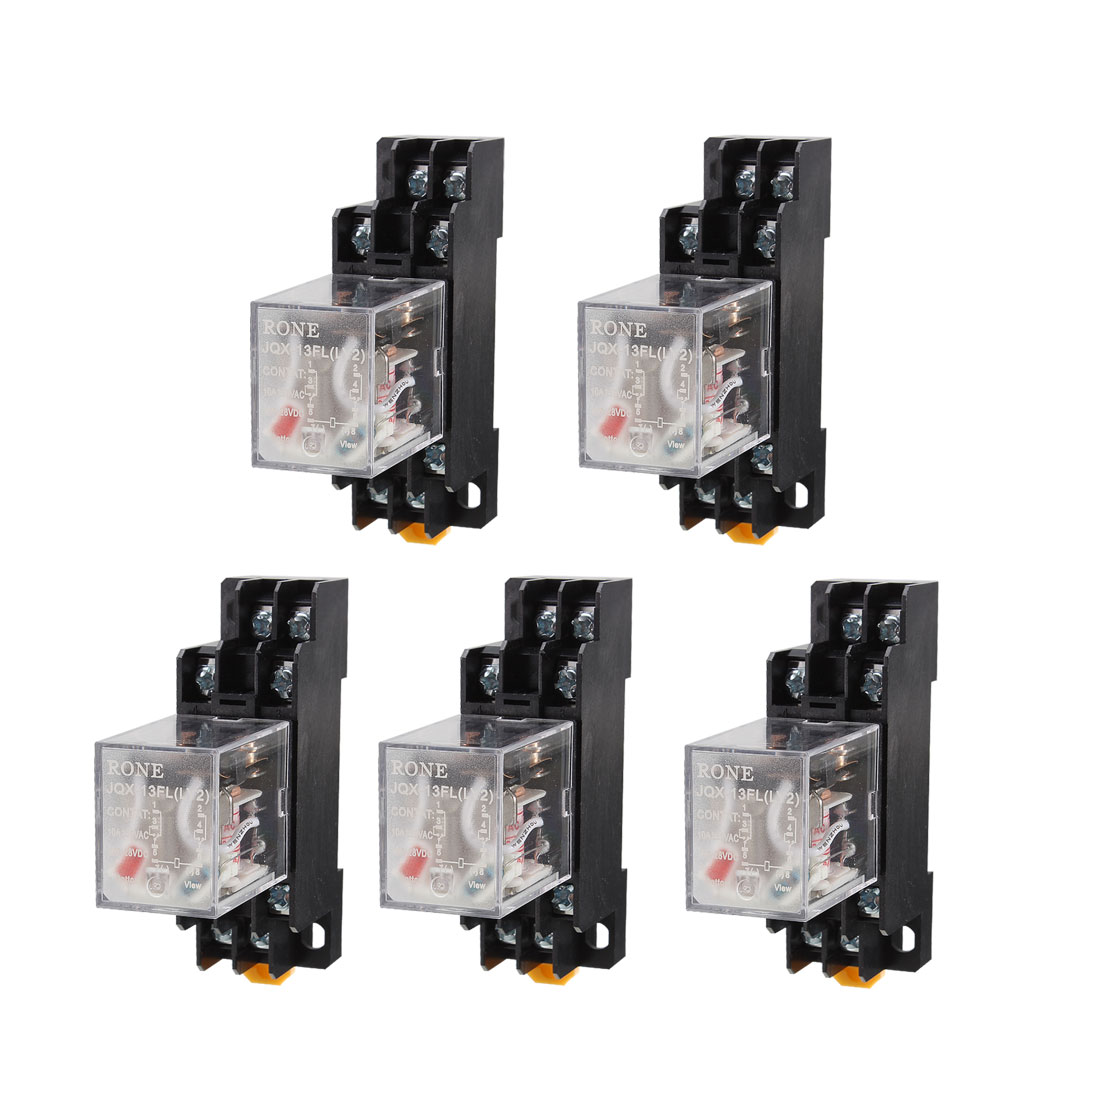 5 Pcs AC 220V-240V DPDT 8 Pins Red LED General Purpose Power Relay w Socket Base